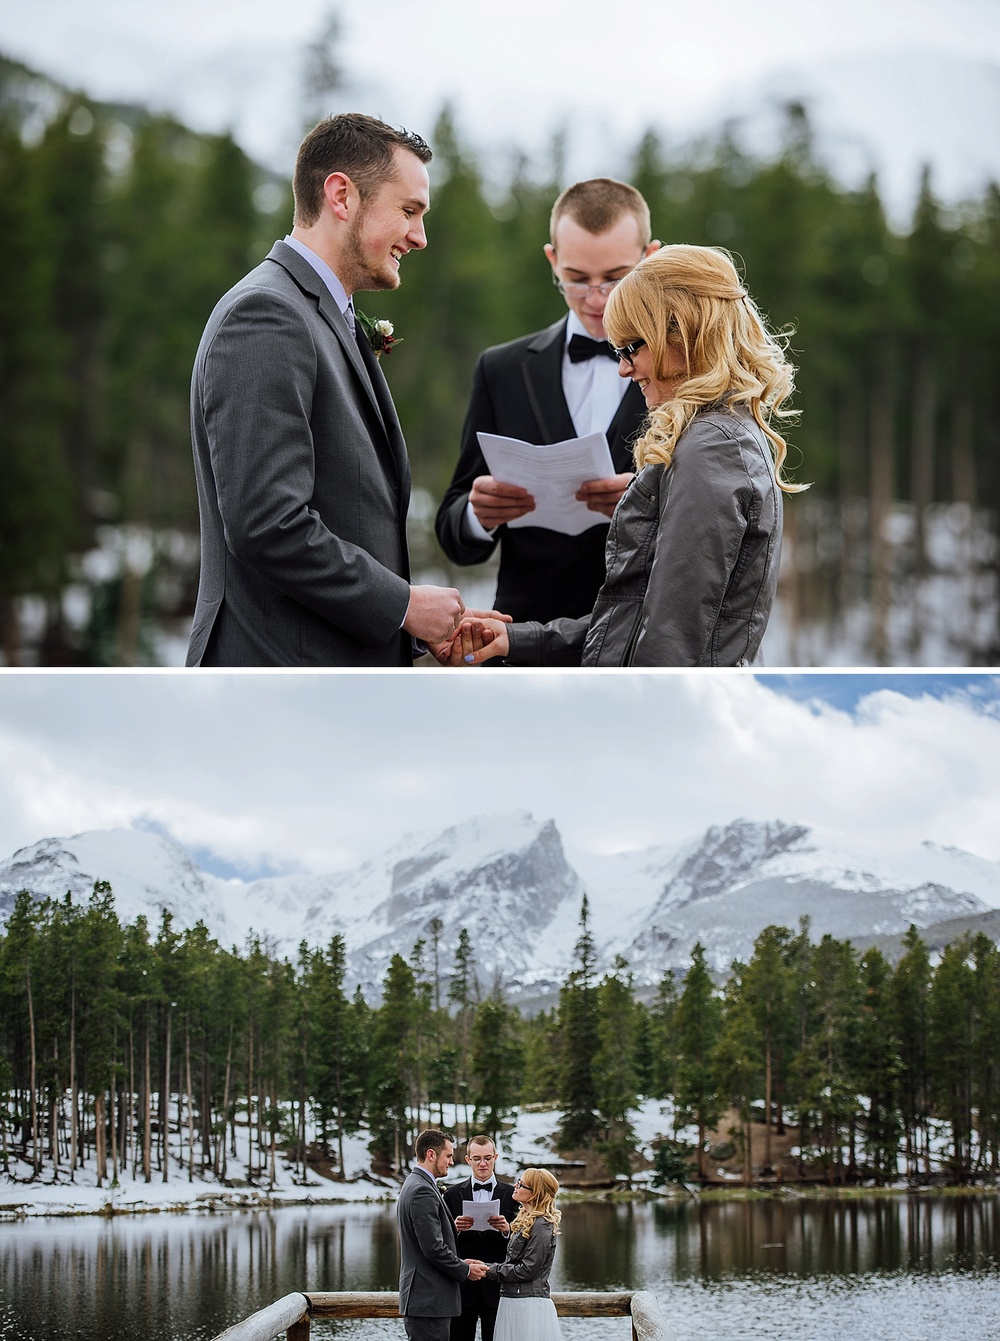 That's it, I want to have my wedding at Sprague Lake in Rocky Mountain National Park during the winter. I love how there is still snow everywhere. This is such a beautiful elopement picture! Photo by Maddie Mae Photography